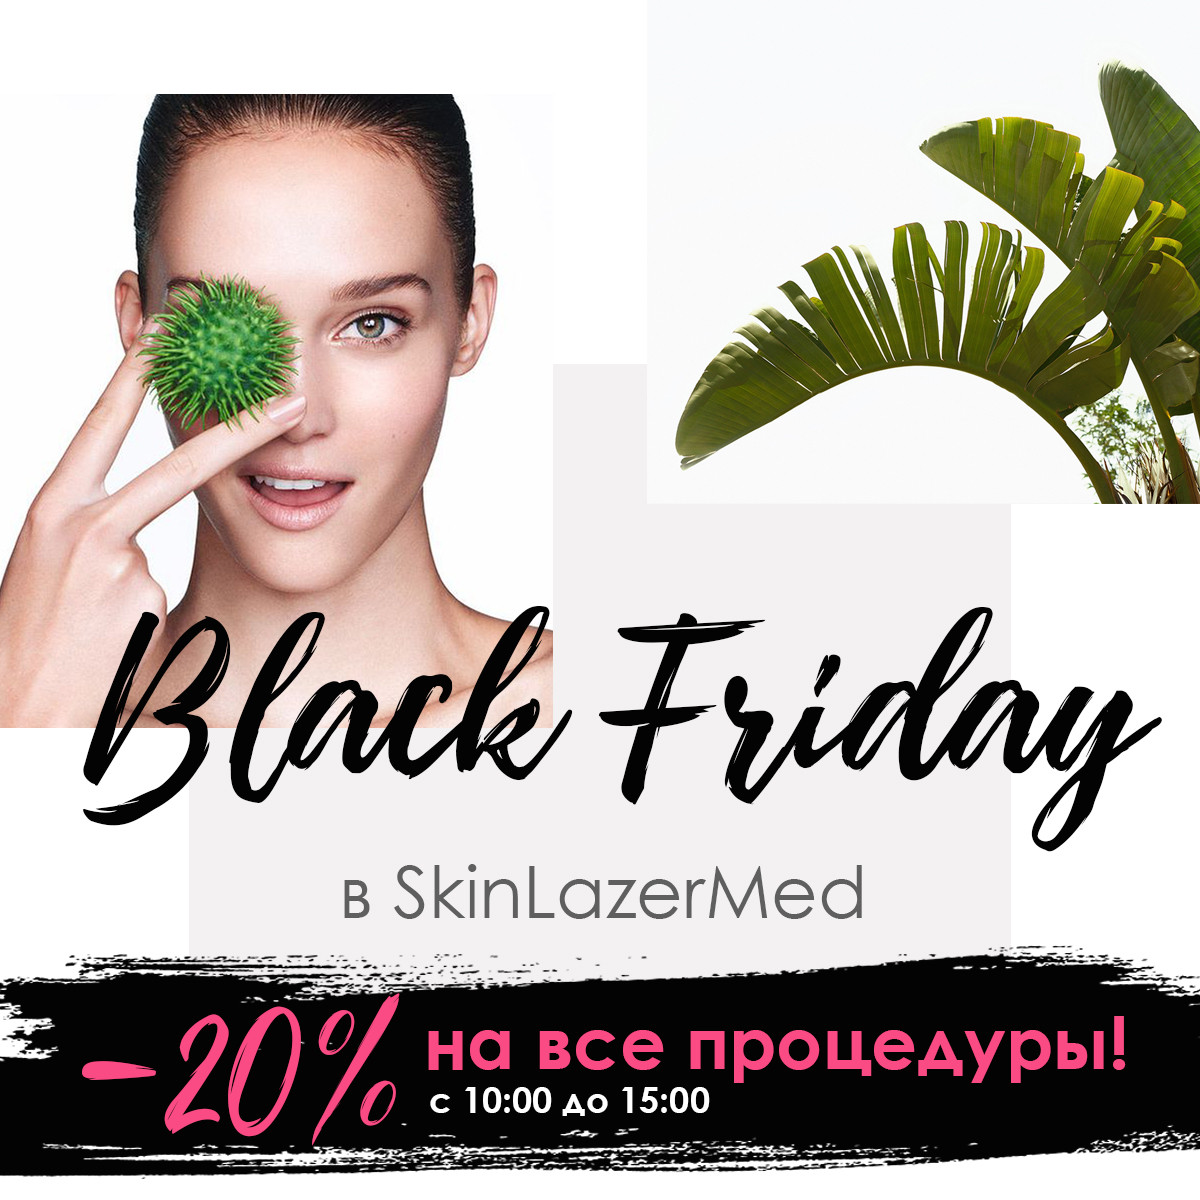 black friday skinlazermed